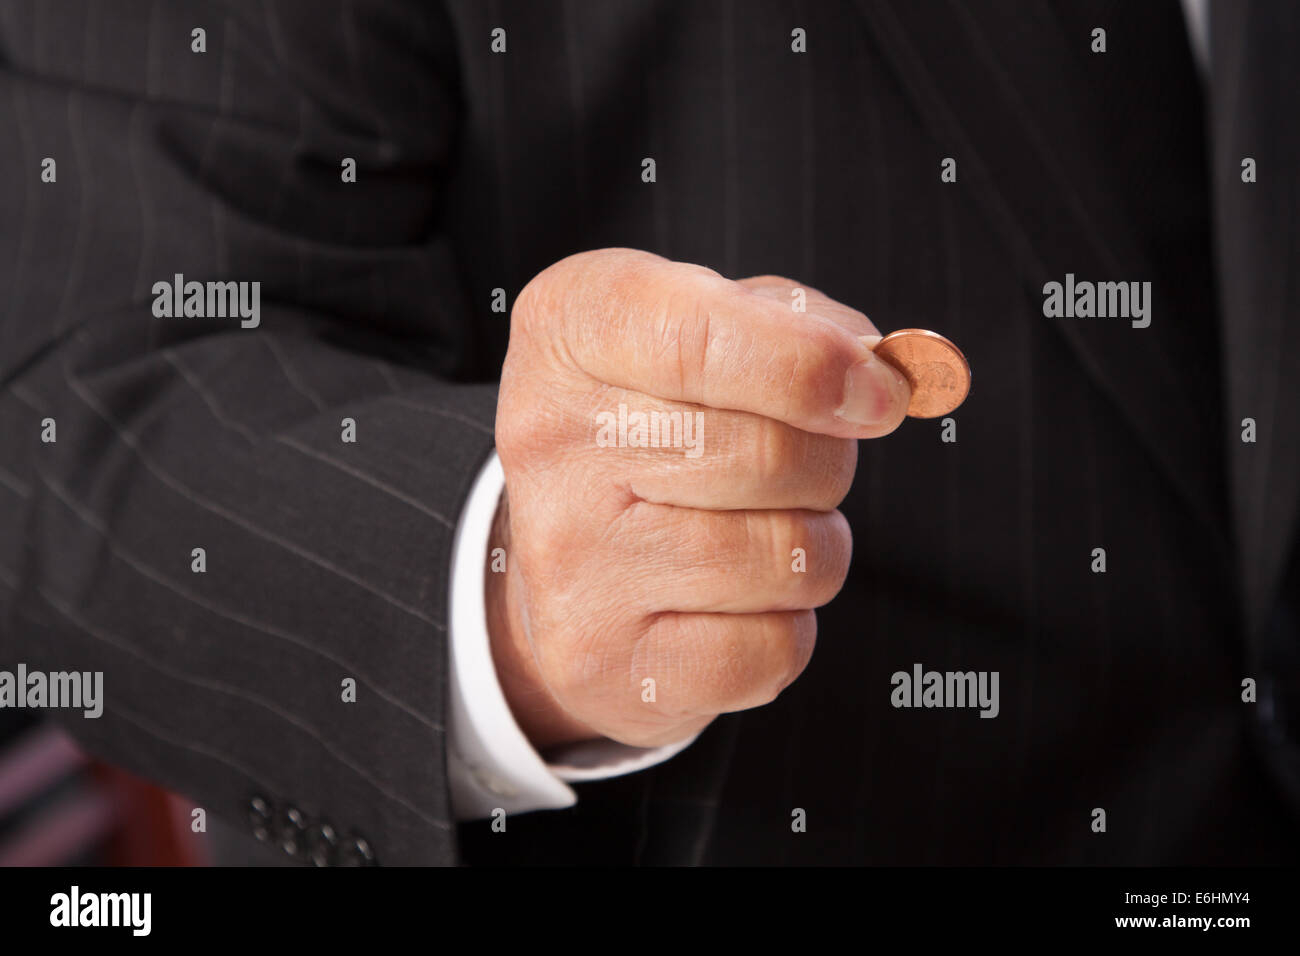 Man's hand pinching penny-horizontal, wearing pin-striped suit with white shirt cuff showing. - Stock Image